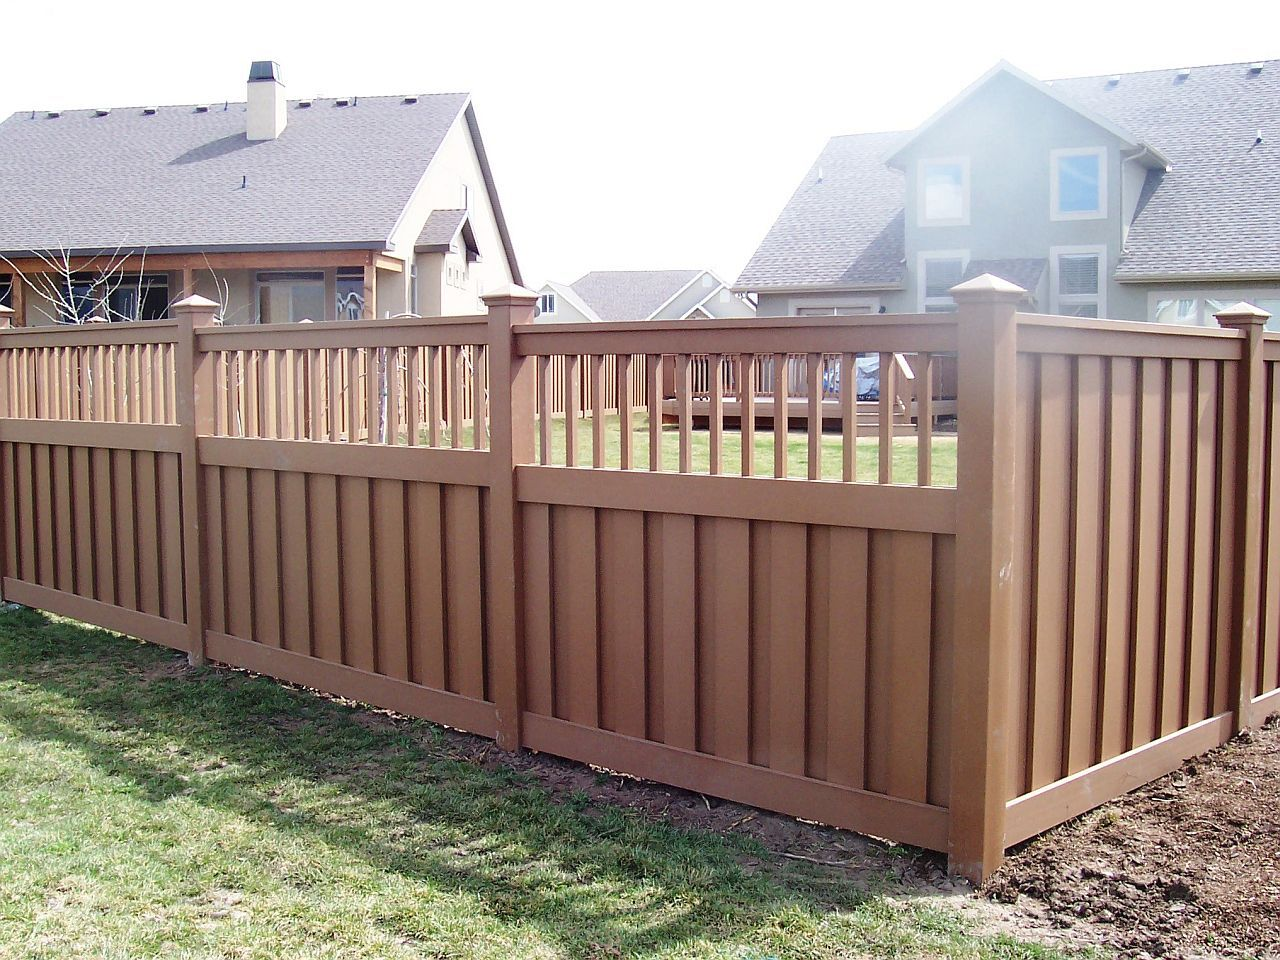 17 best images about fences on pinterest fence design fence ideas and lattices